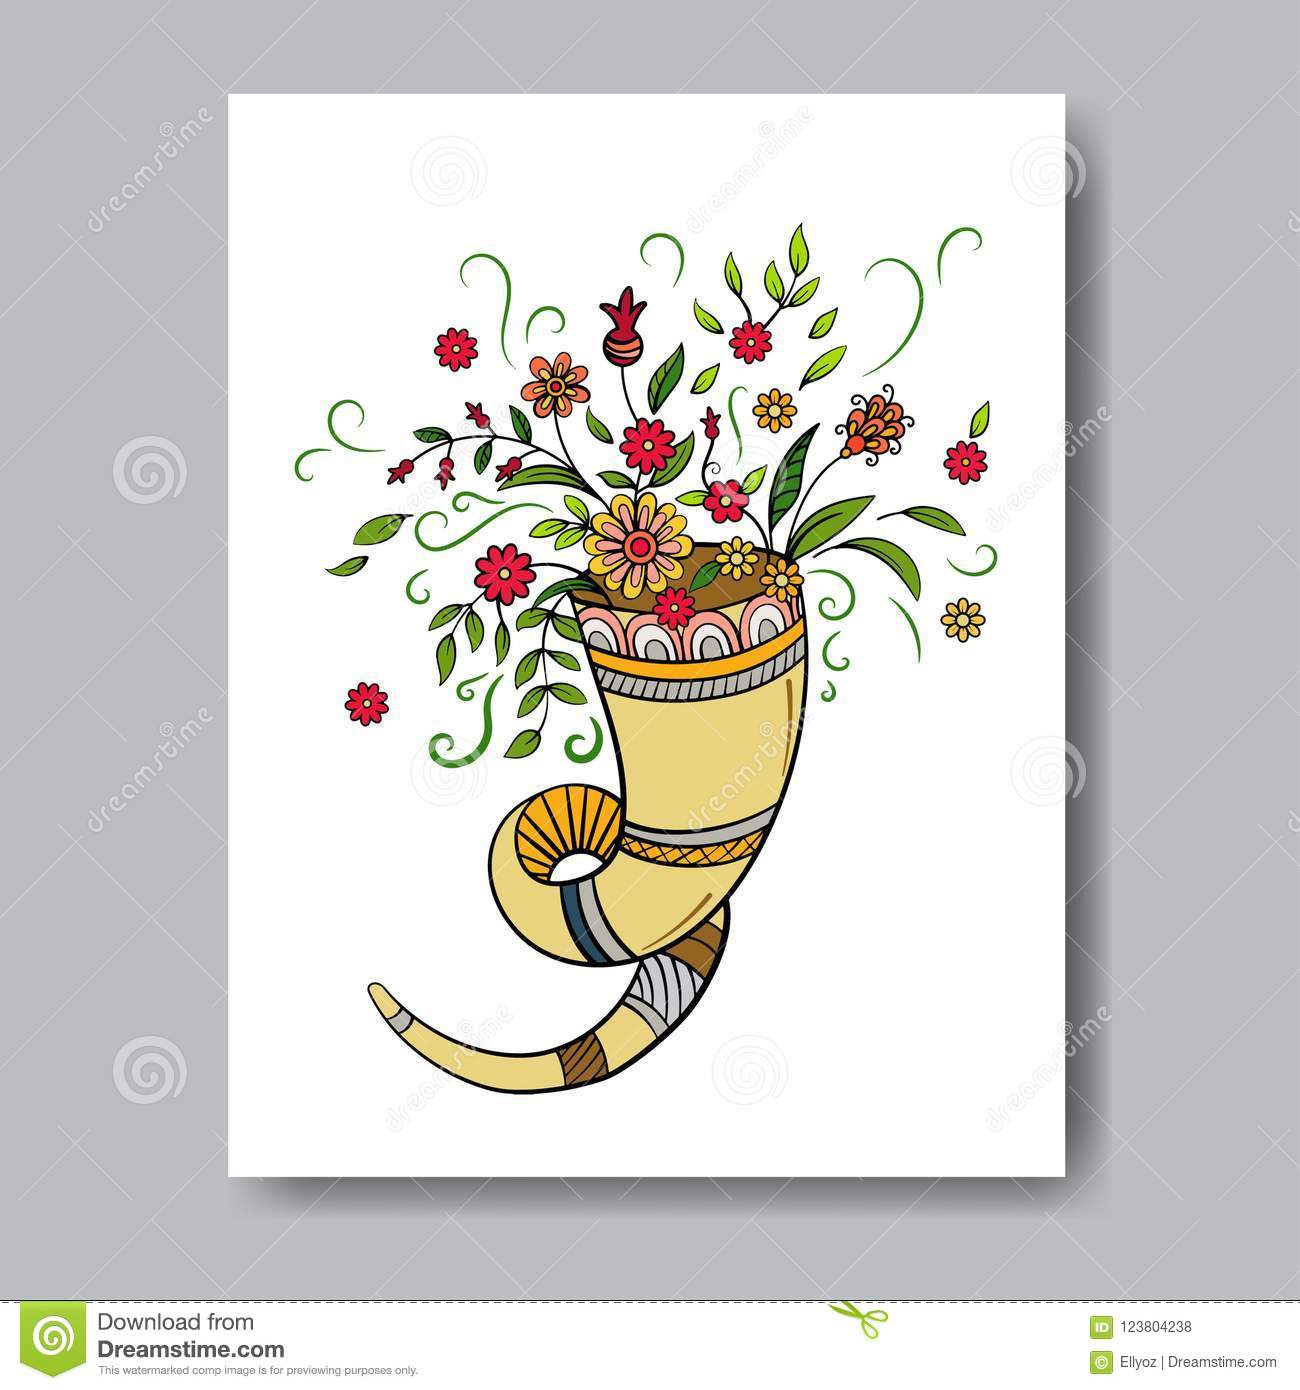 Rosh Hashanah Greeting Card Stock Vector Illustration Of